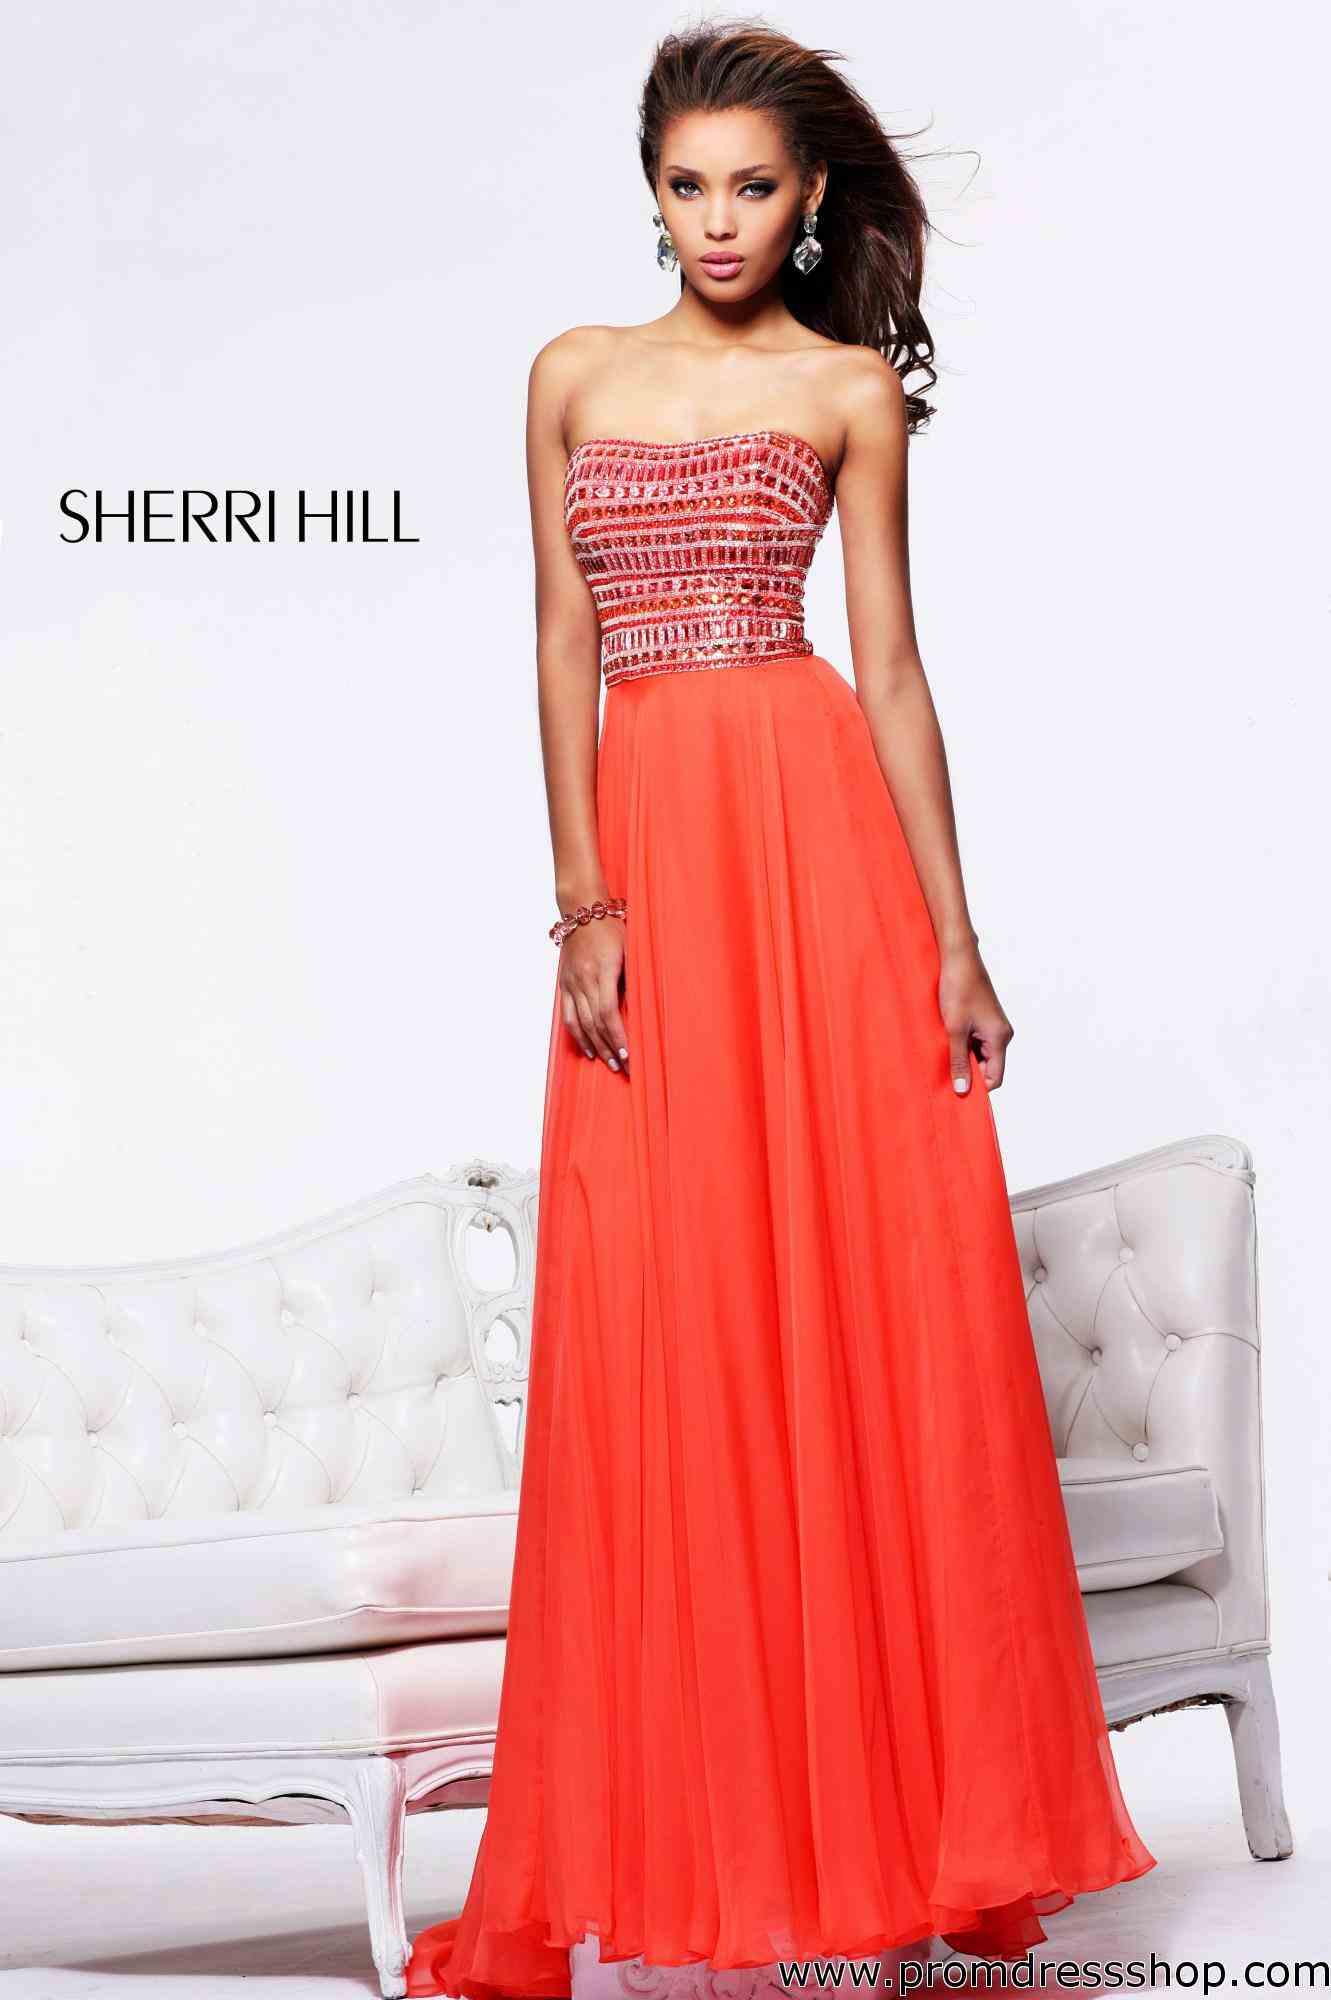 Red Sherri Hill Prom Dresses 2014 - Jetumalu.net